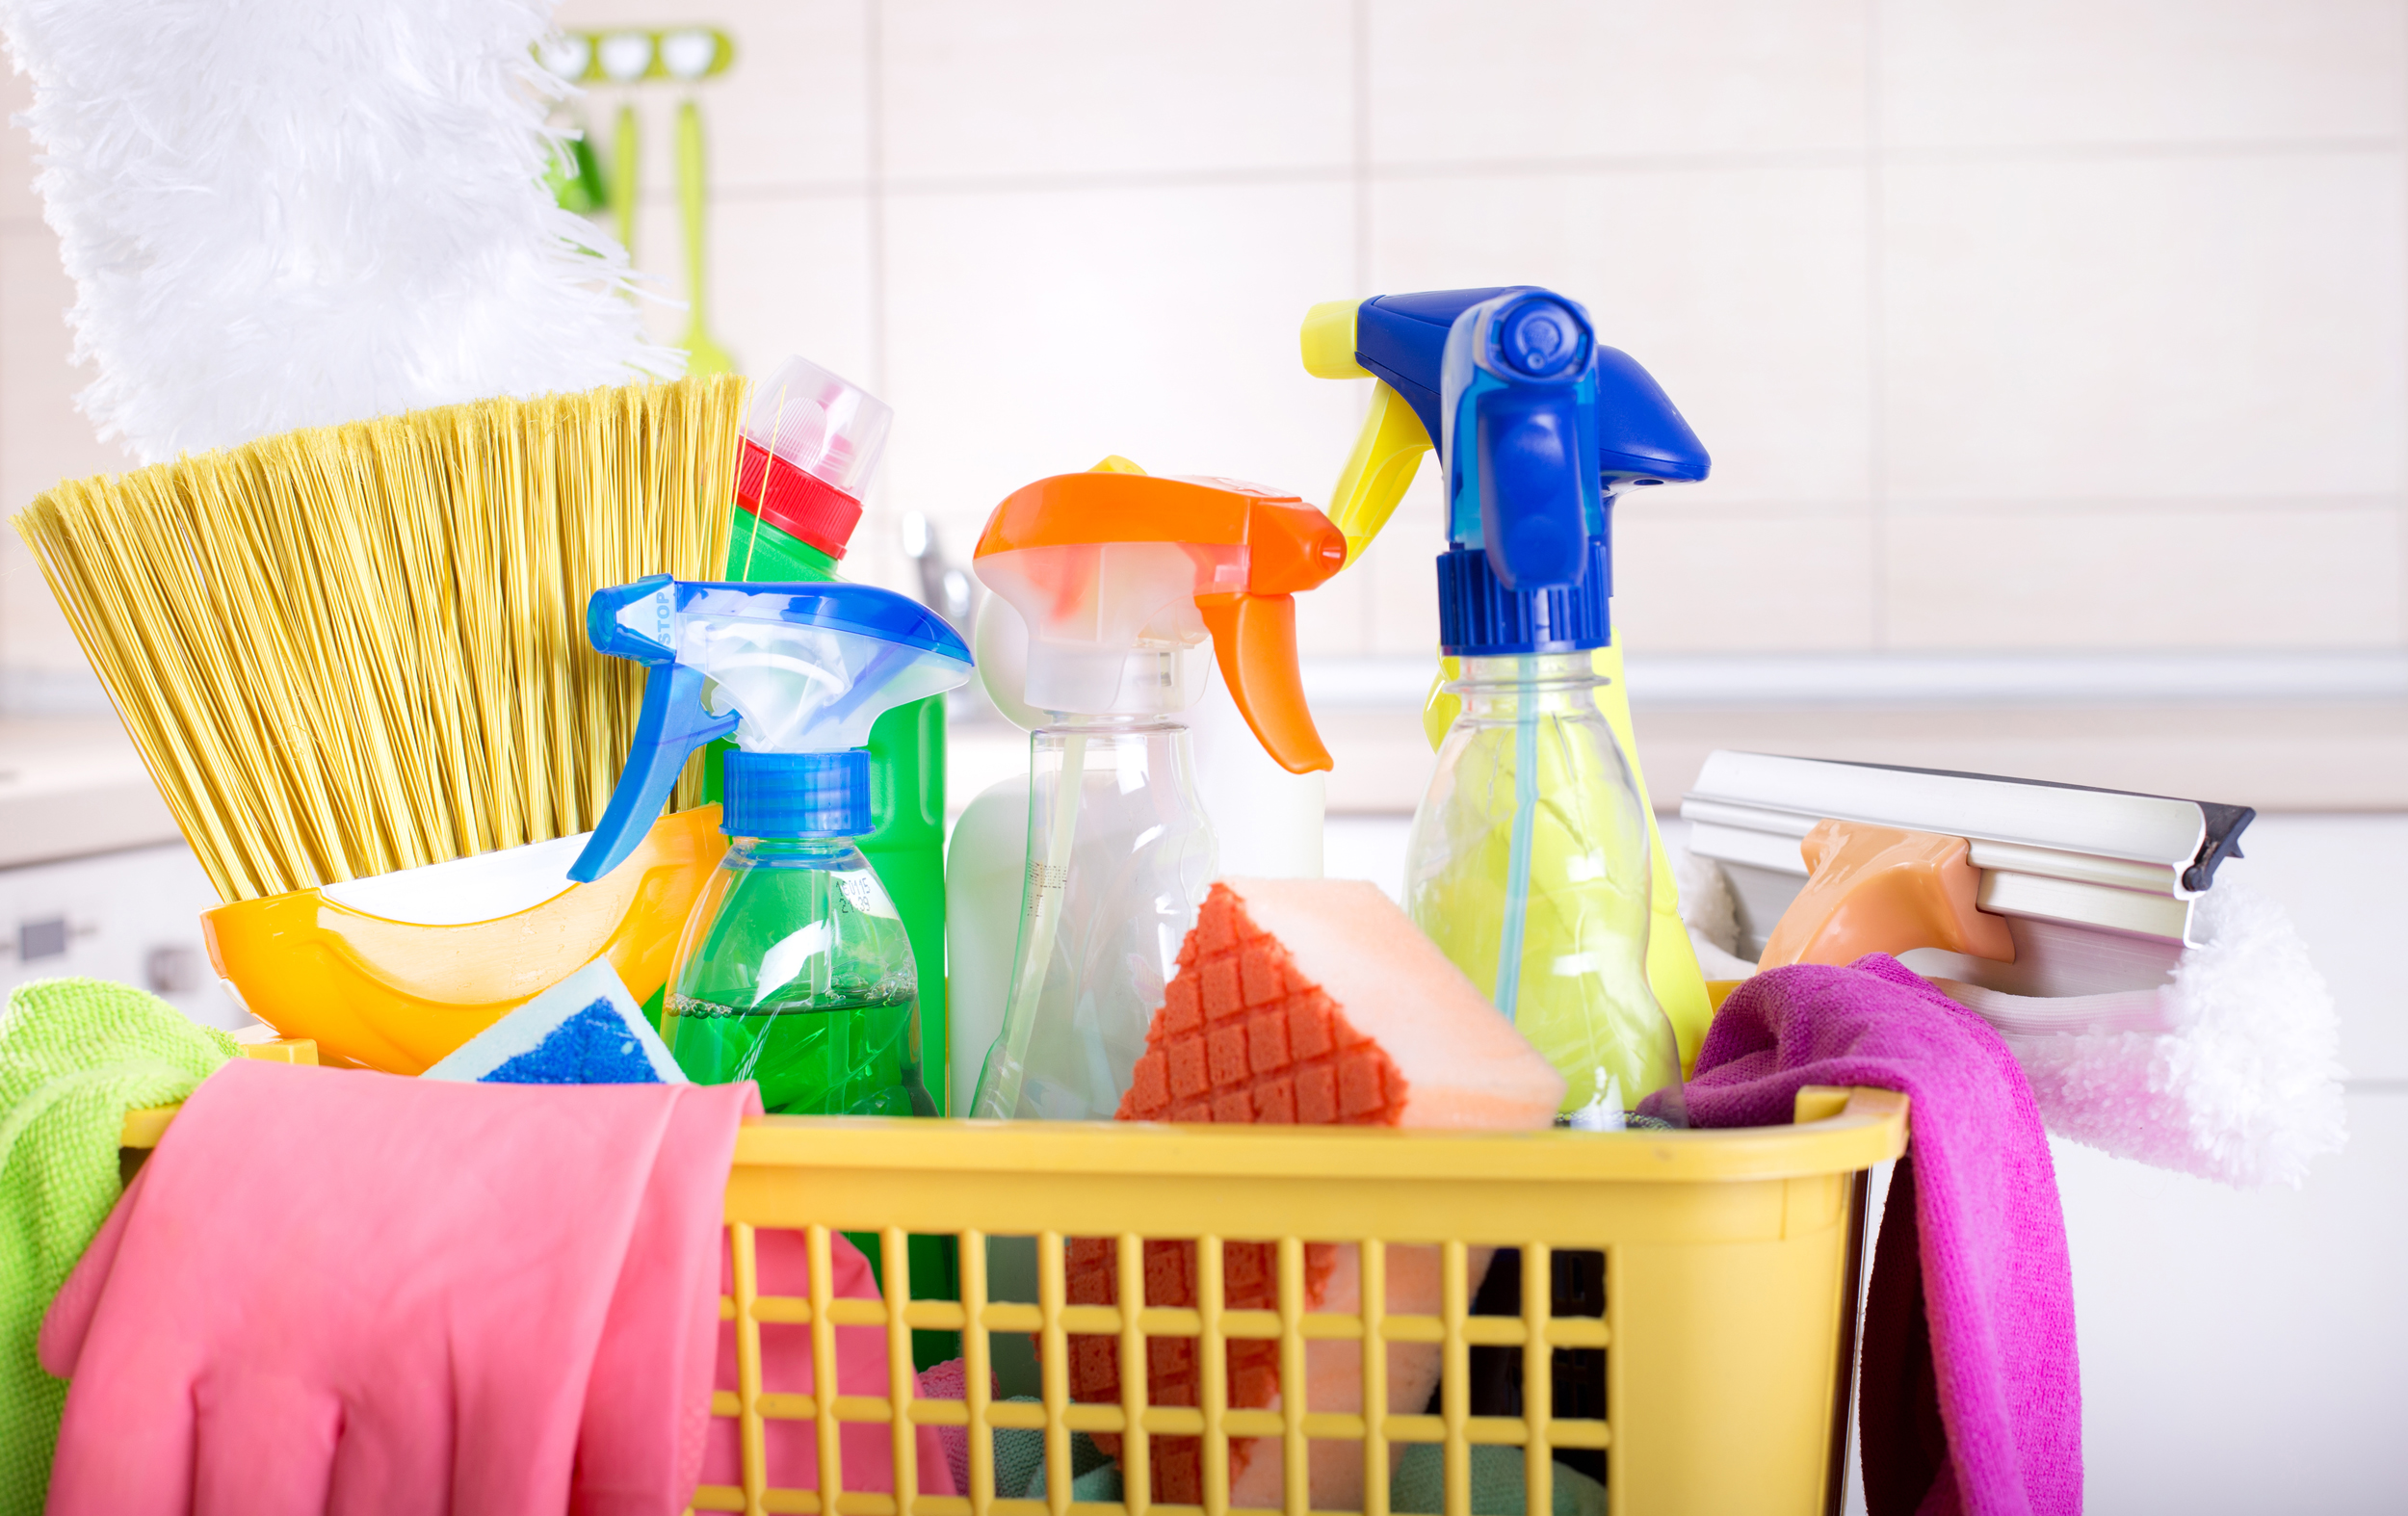 Make Household Supplies